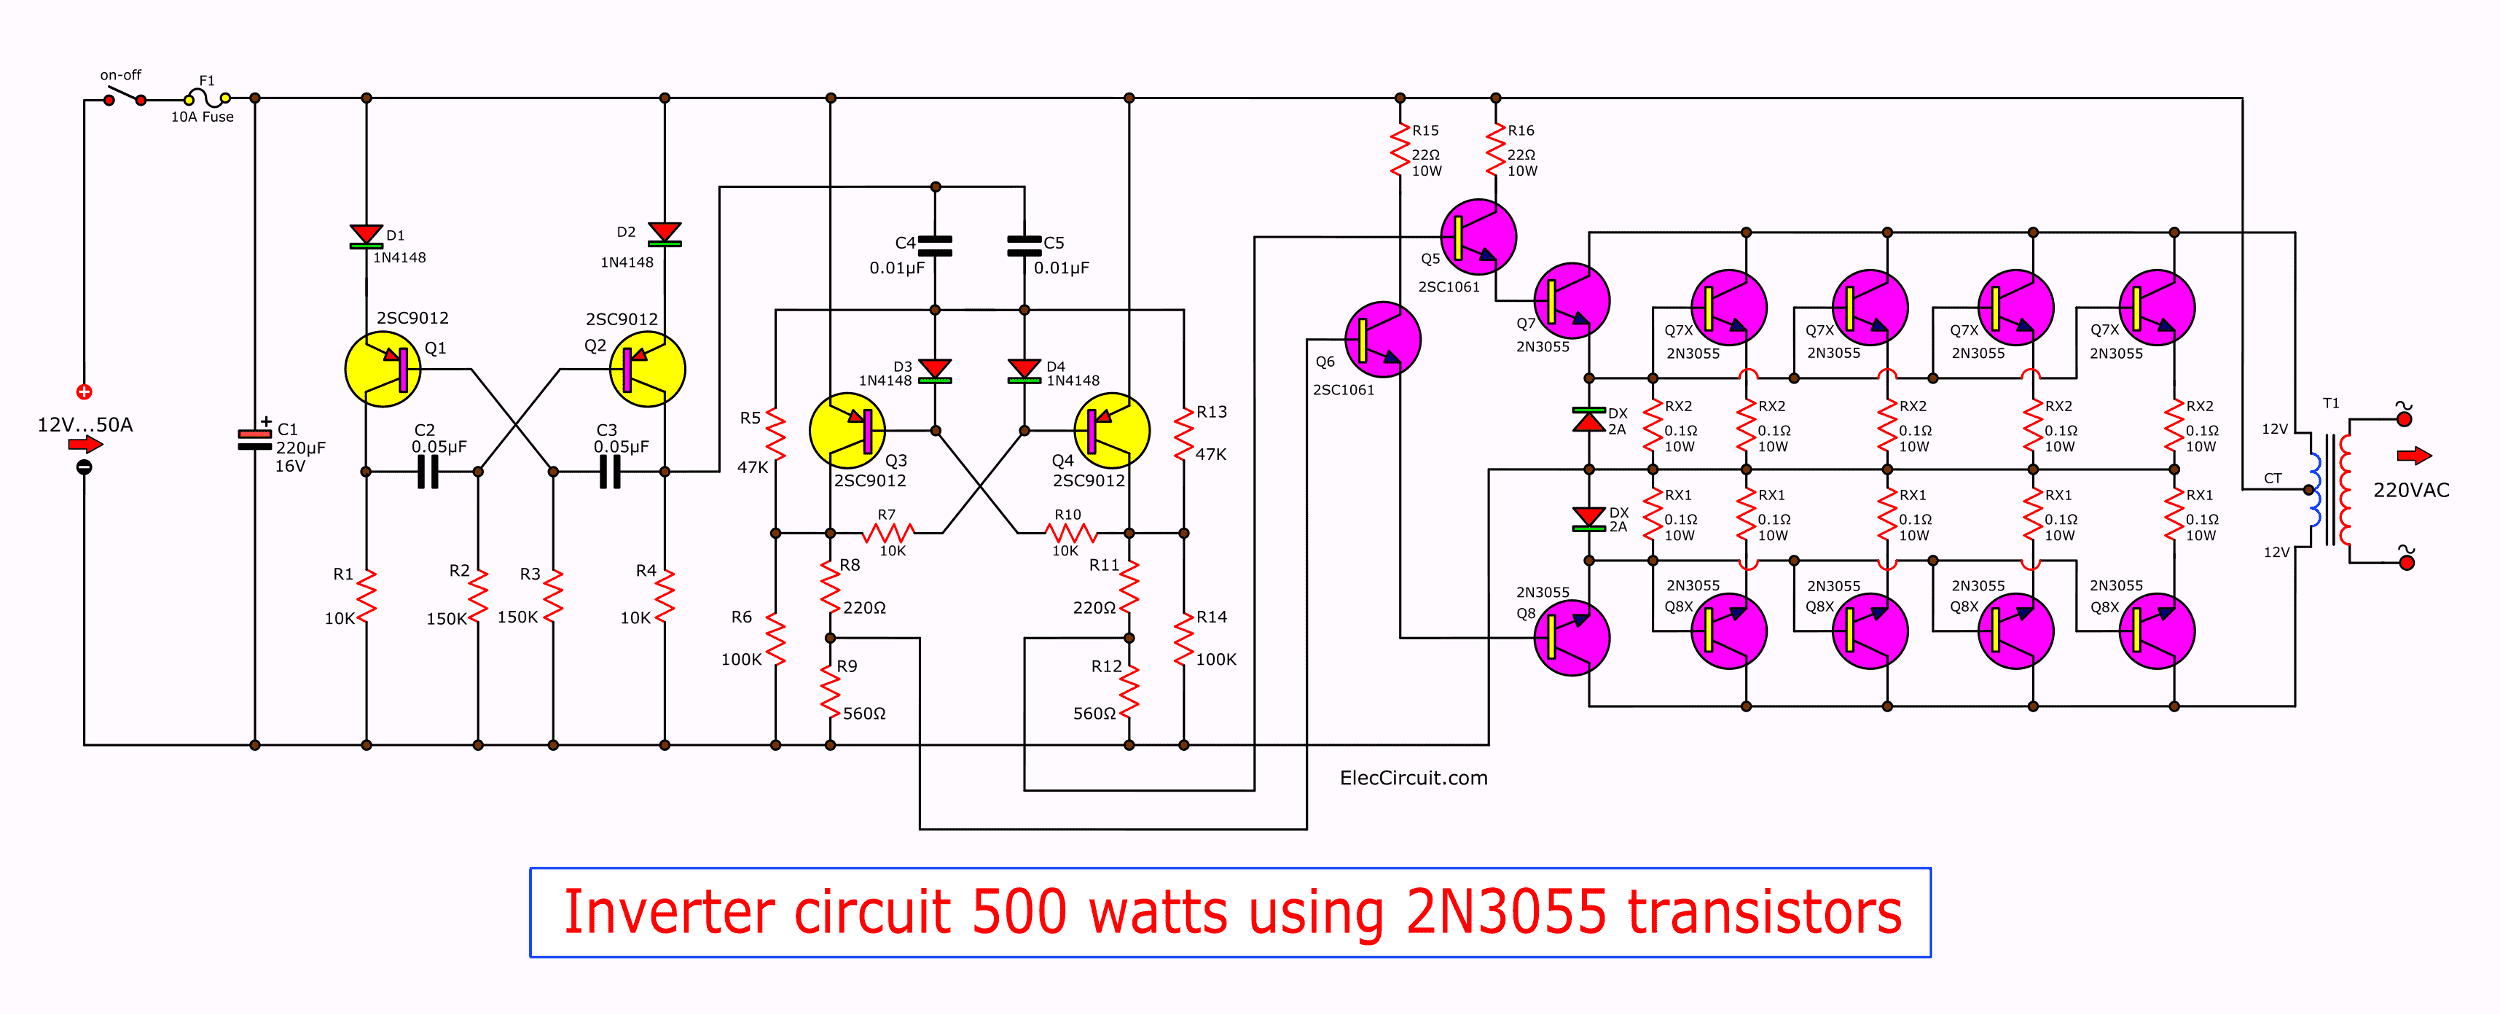 300w inverter power 24vdc to 220vac by mj15003 ca3130 cd4027 rh eleccircuit com 12v 300w inverter circuit diagram 300w inverter circuit diagram pdf